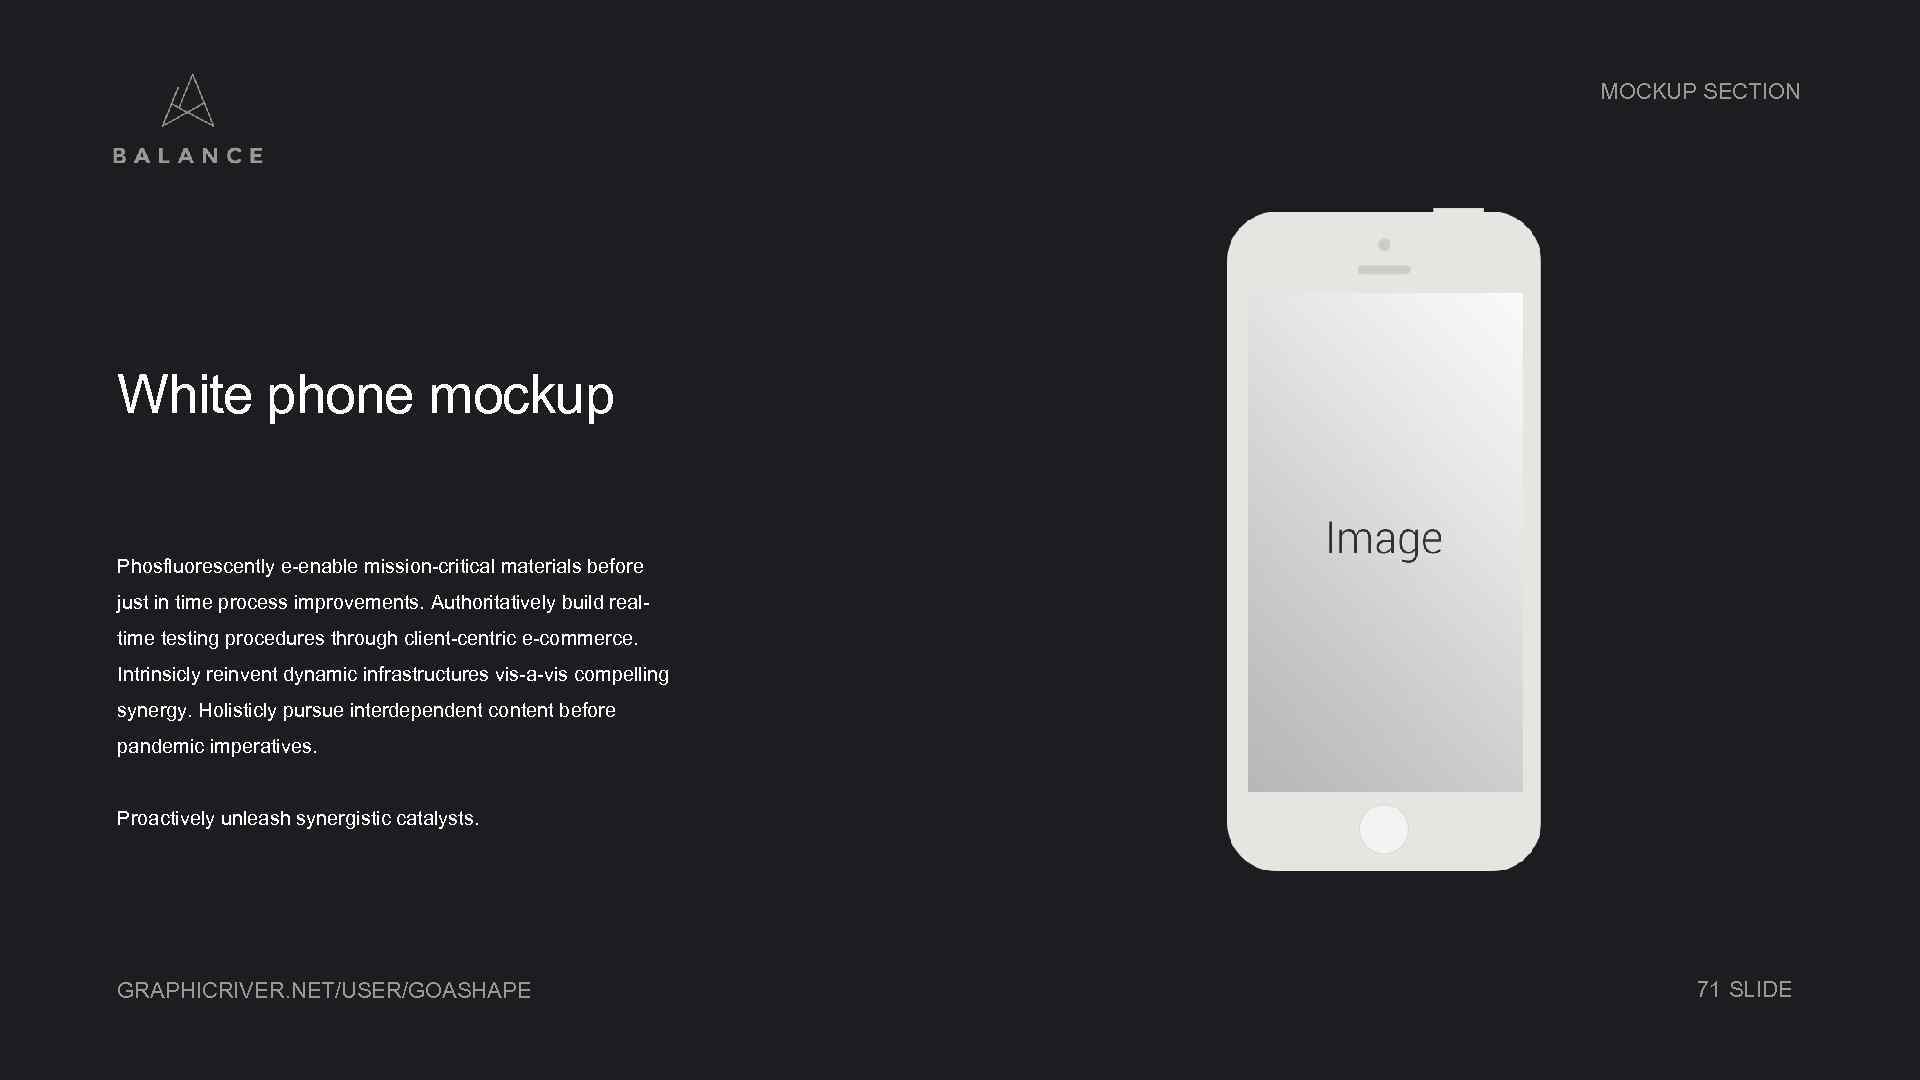 MOCKUP SECTION White phone mockup Phosfluorescently e-enable mission-critical materials before just in time process